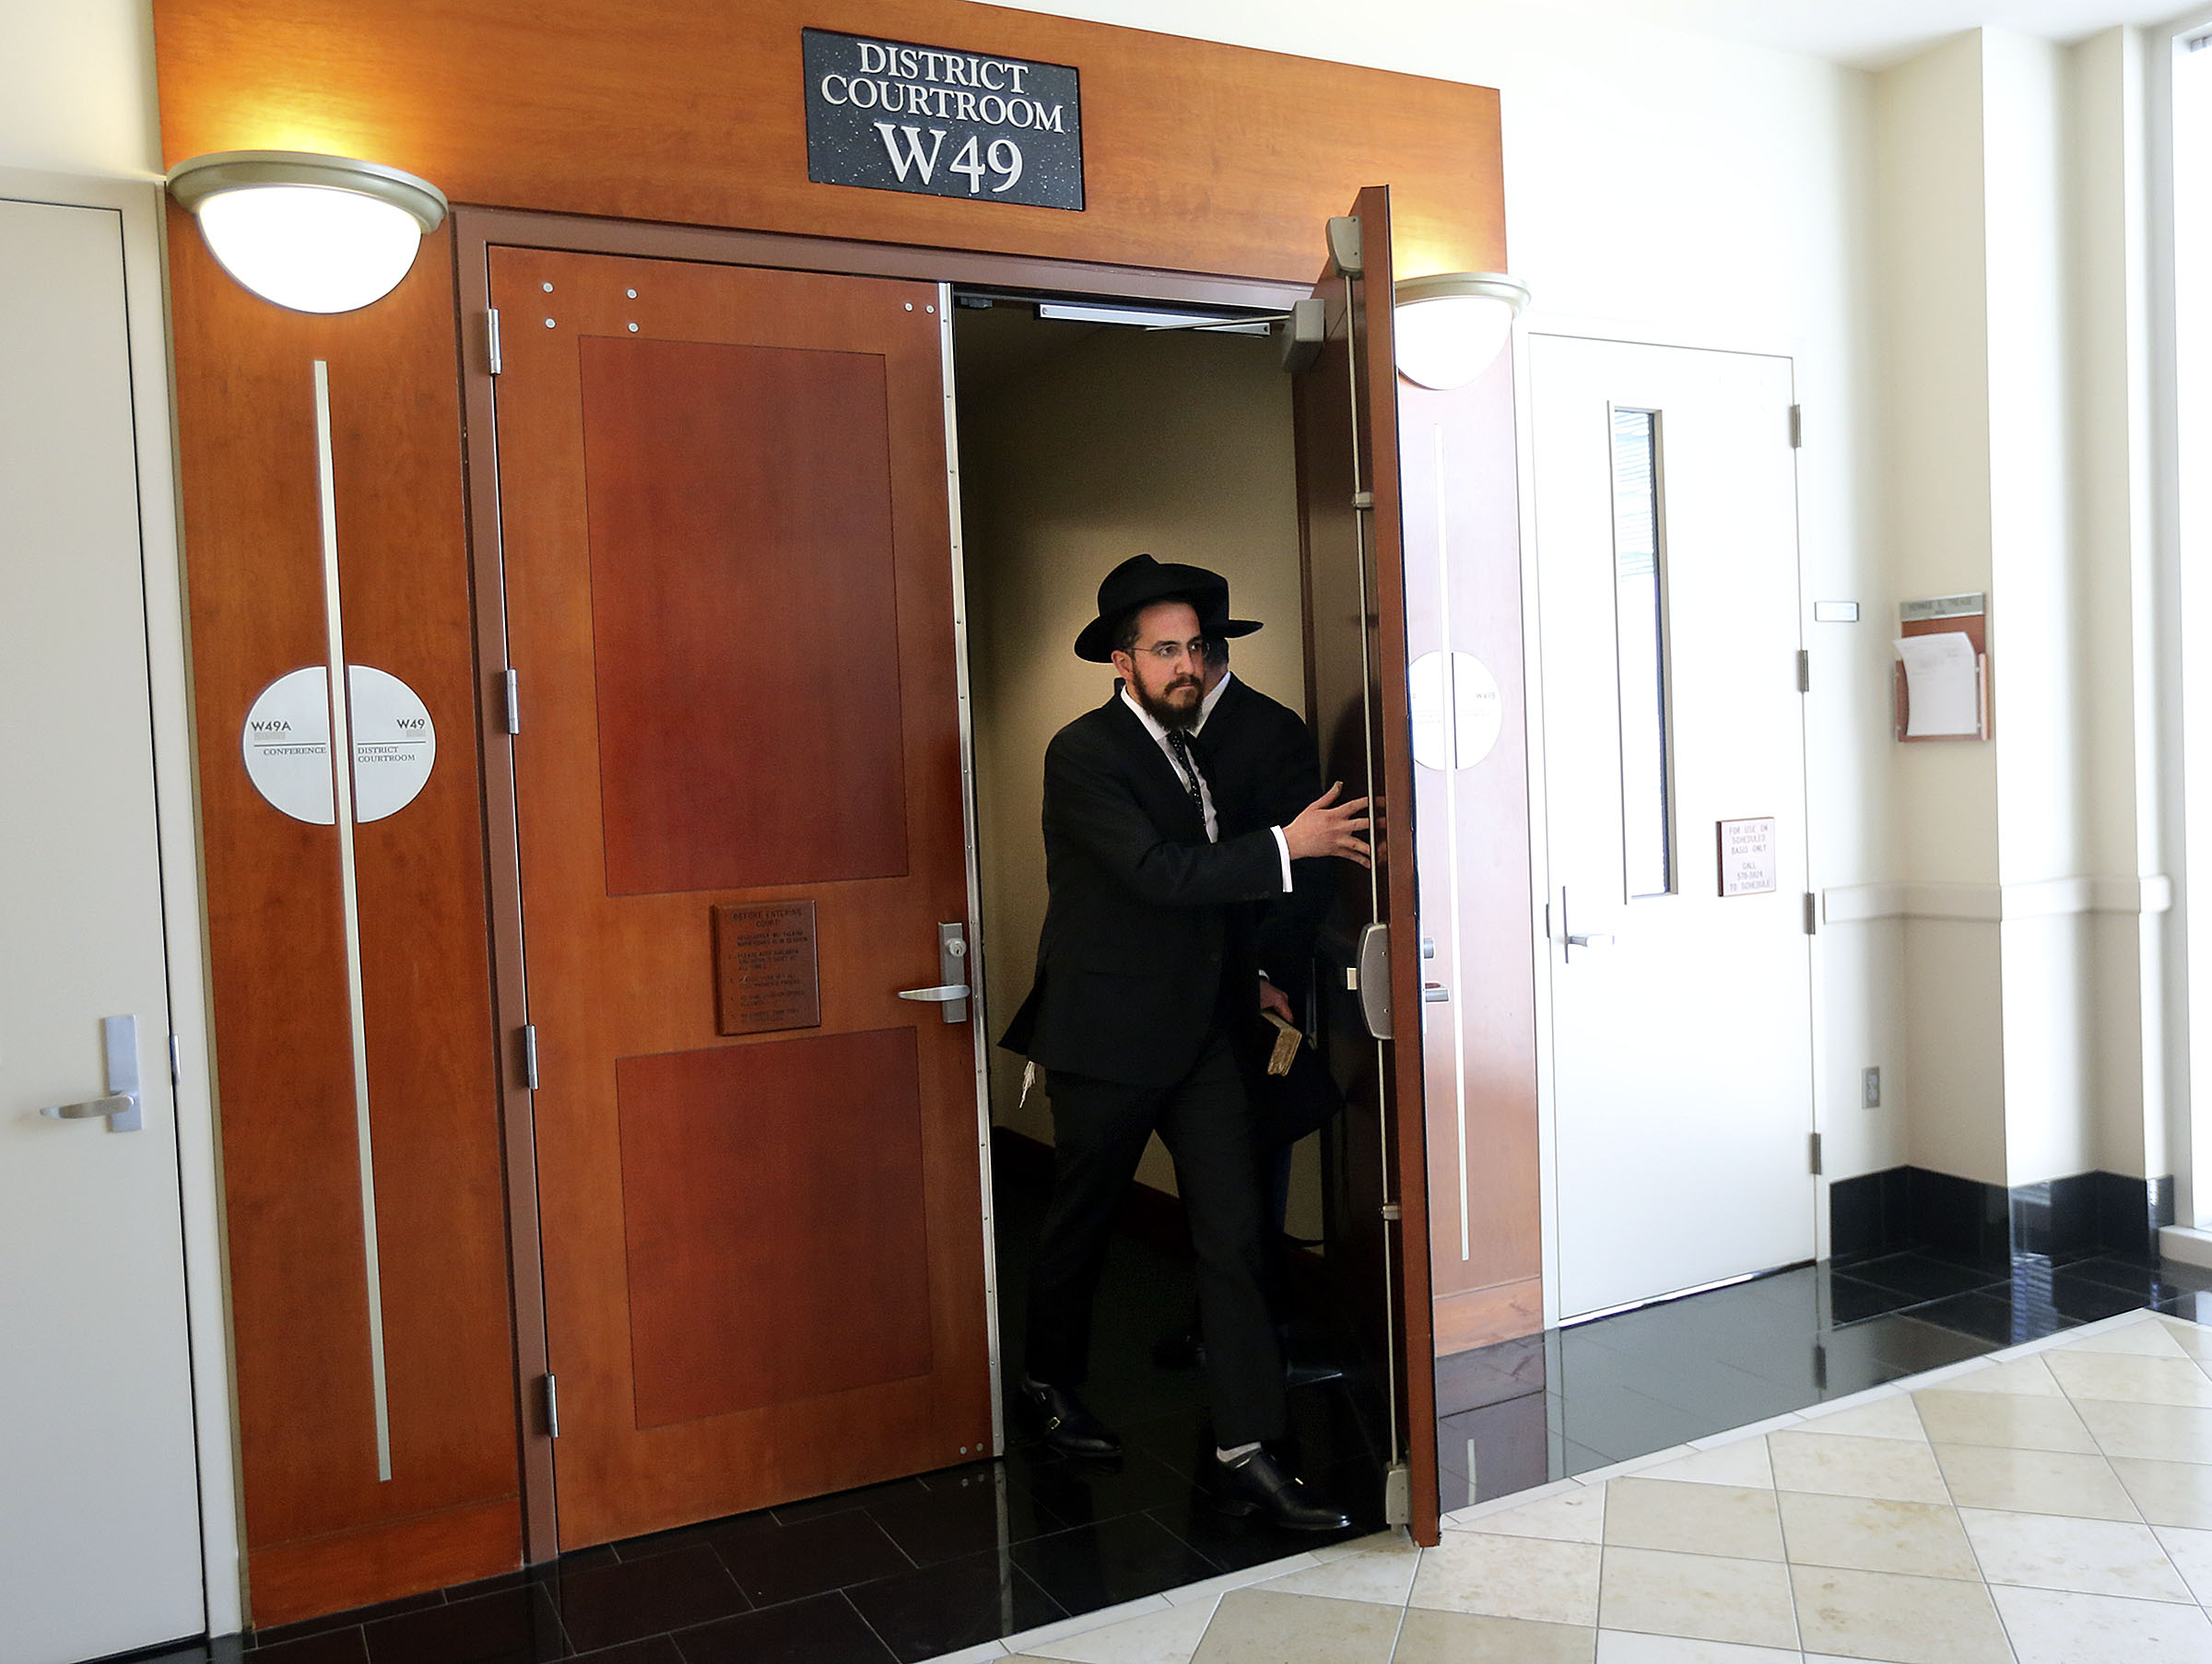 Rabbi Avremi Zippel leaves the courtroom during a break in the trial of Alavina Fungaihea Florreich, who is accused of sexually abusing him when he was a child and she was his nanny, at the Matheson Courthouse in Salt Lake City on Tuesday, Nov. 12, 2019.